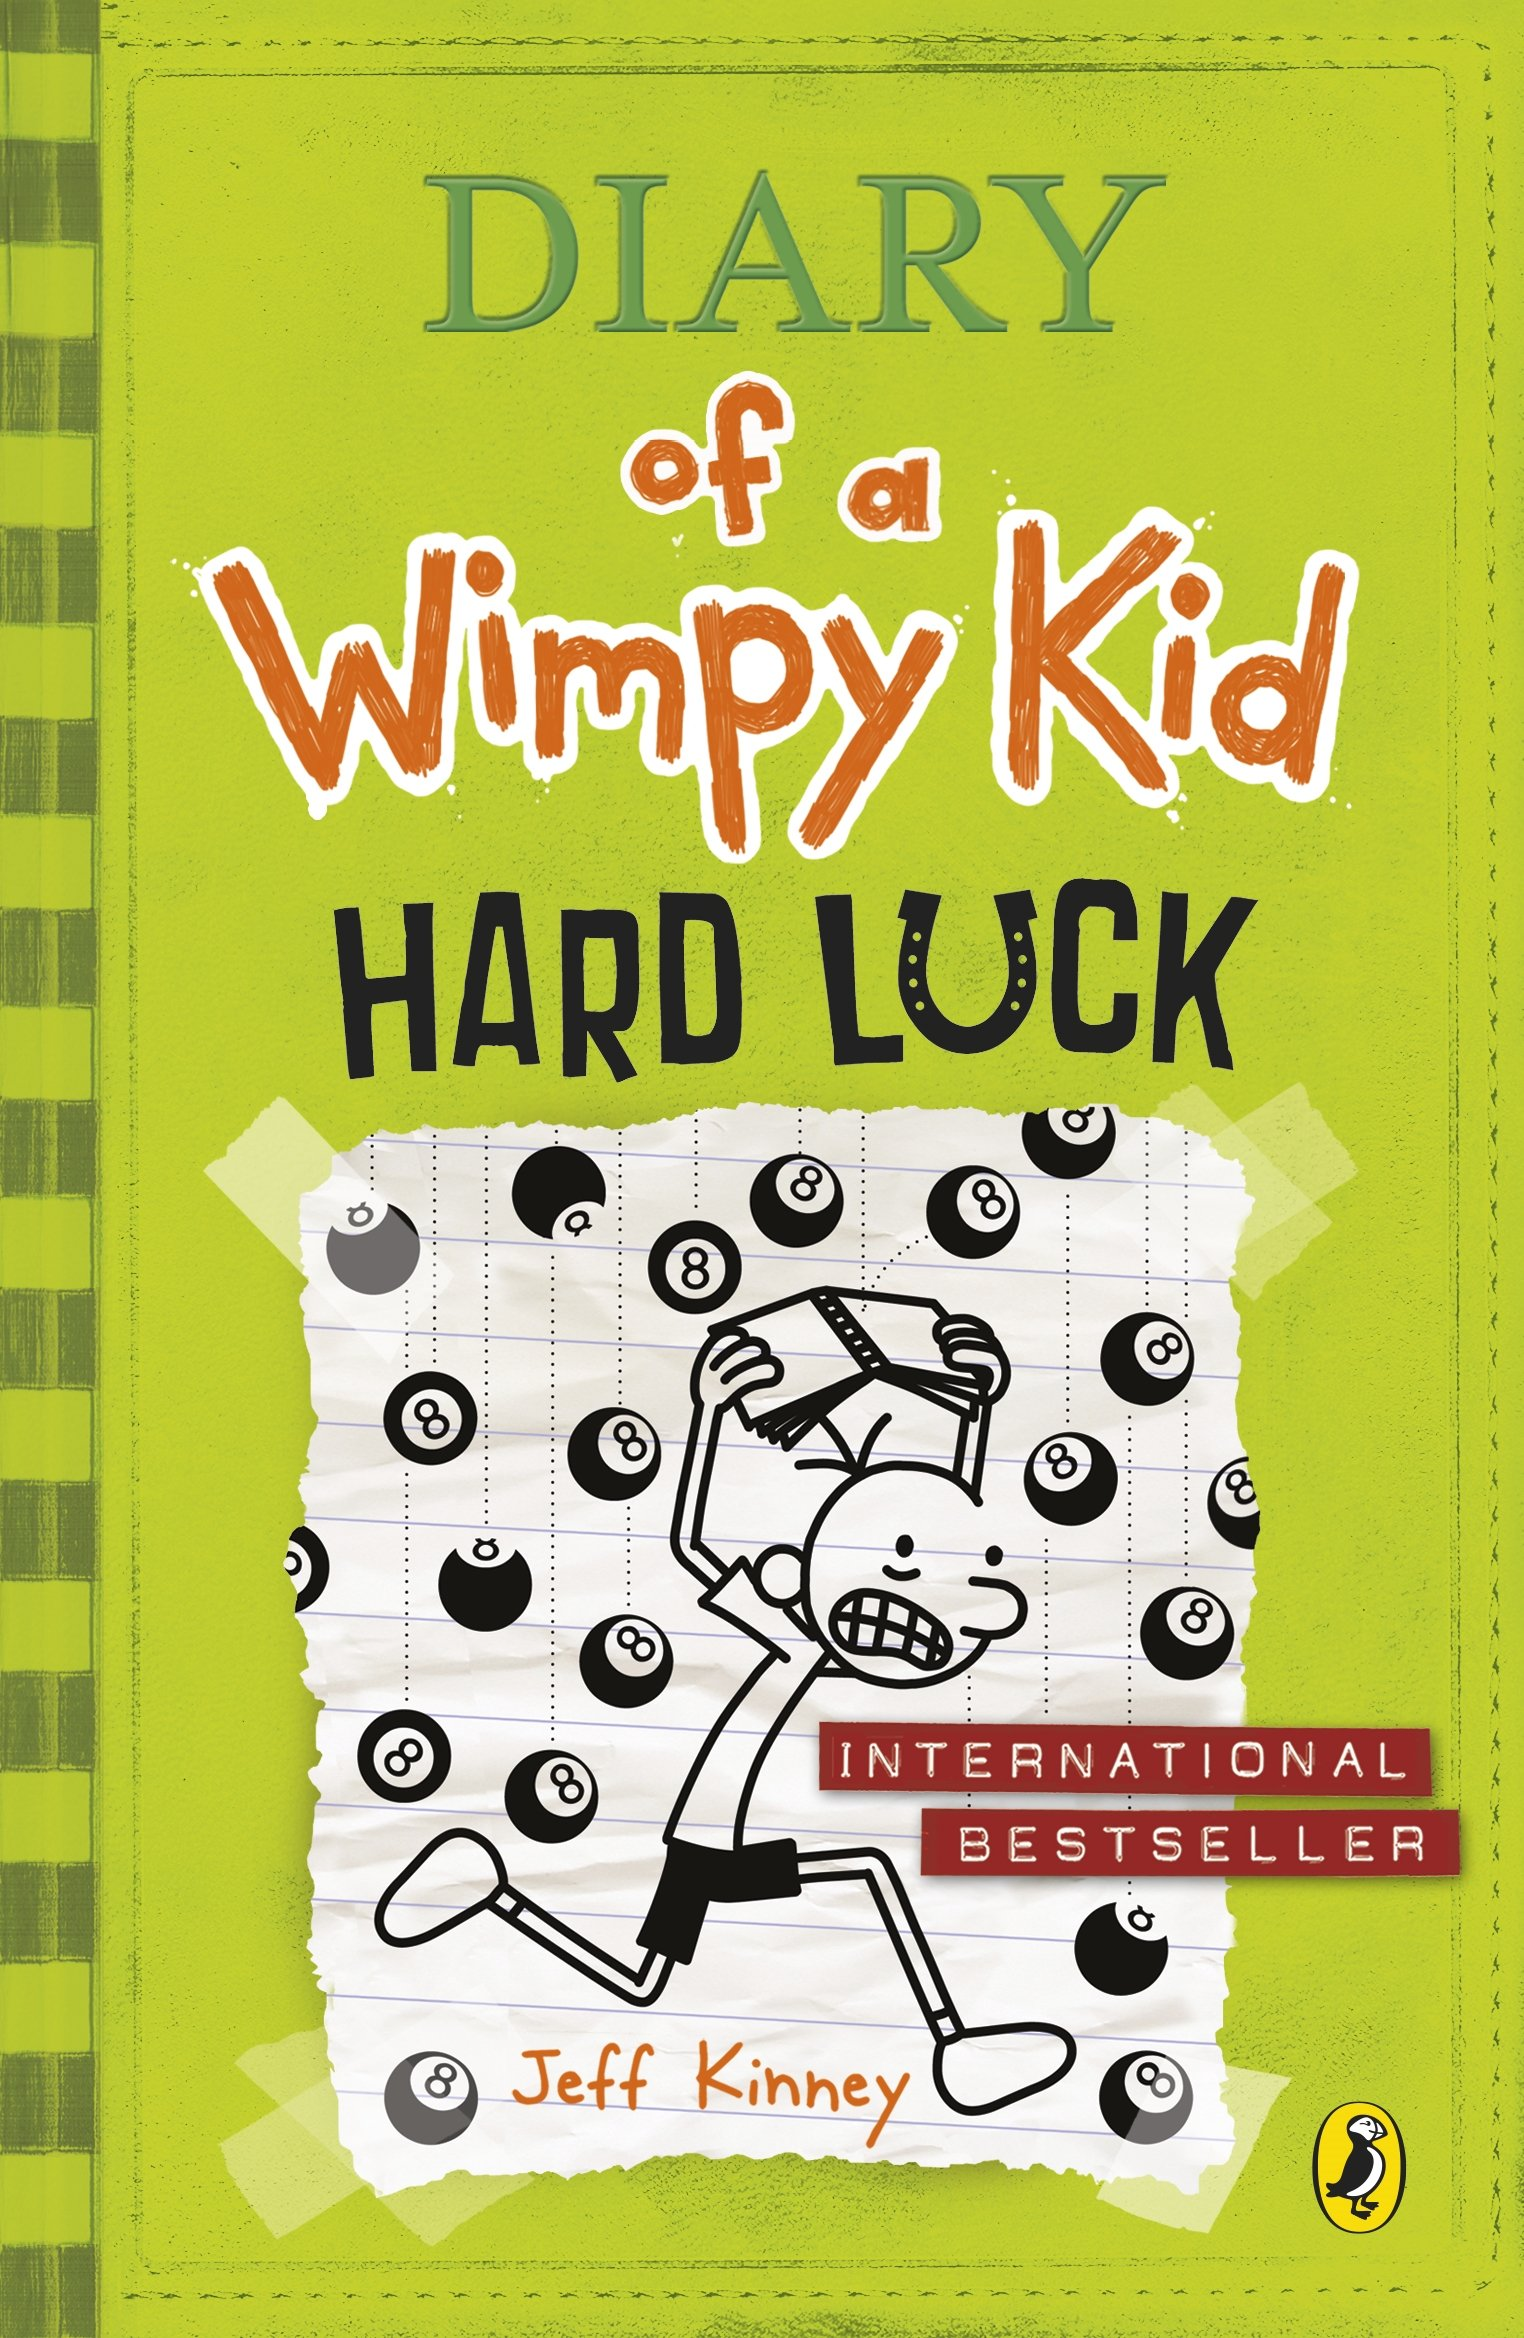 Diary of a Wimpy Kid book 8: Hard Luck (2015)